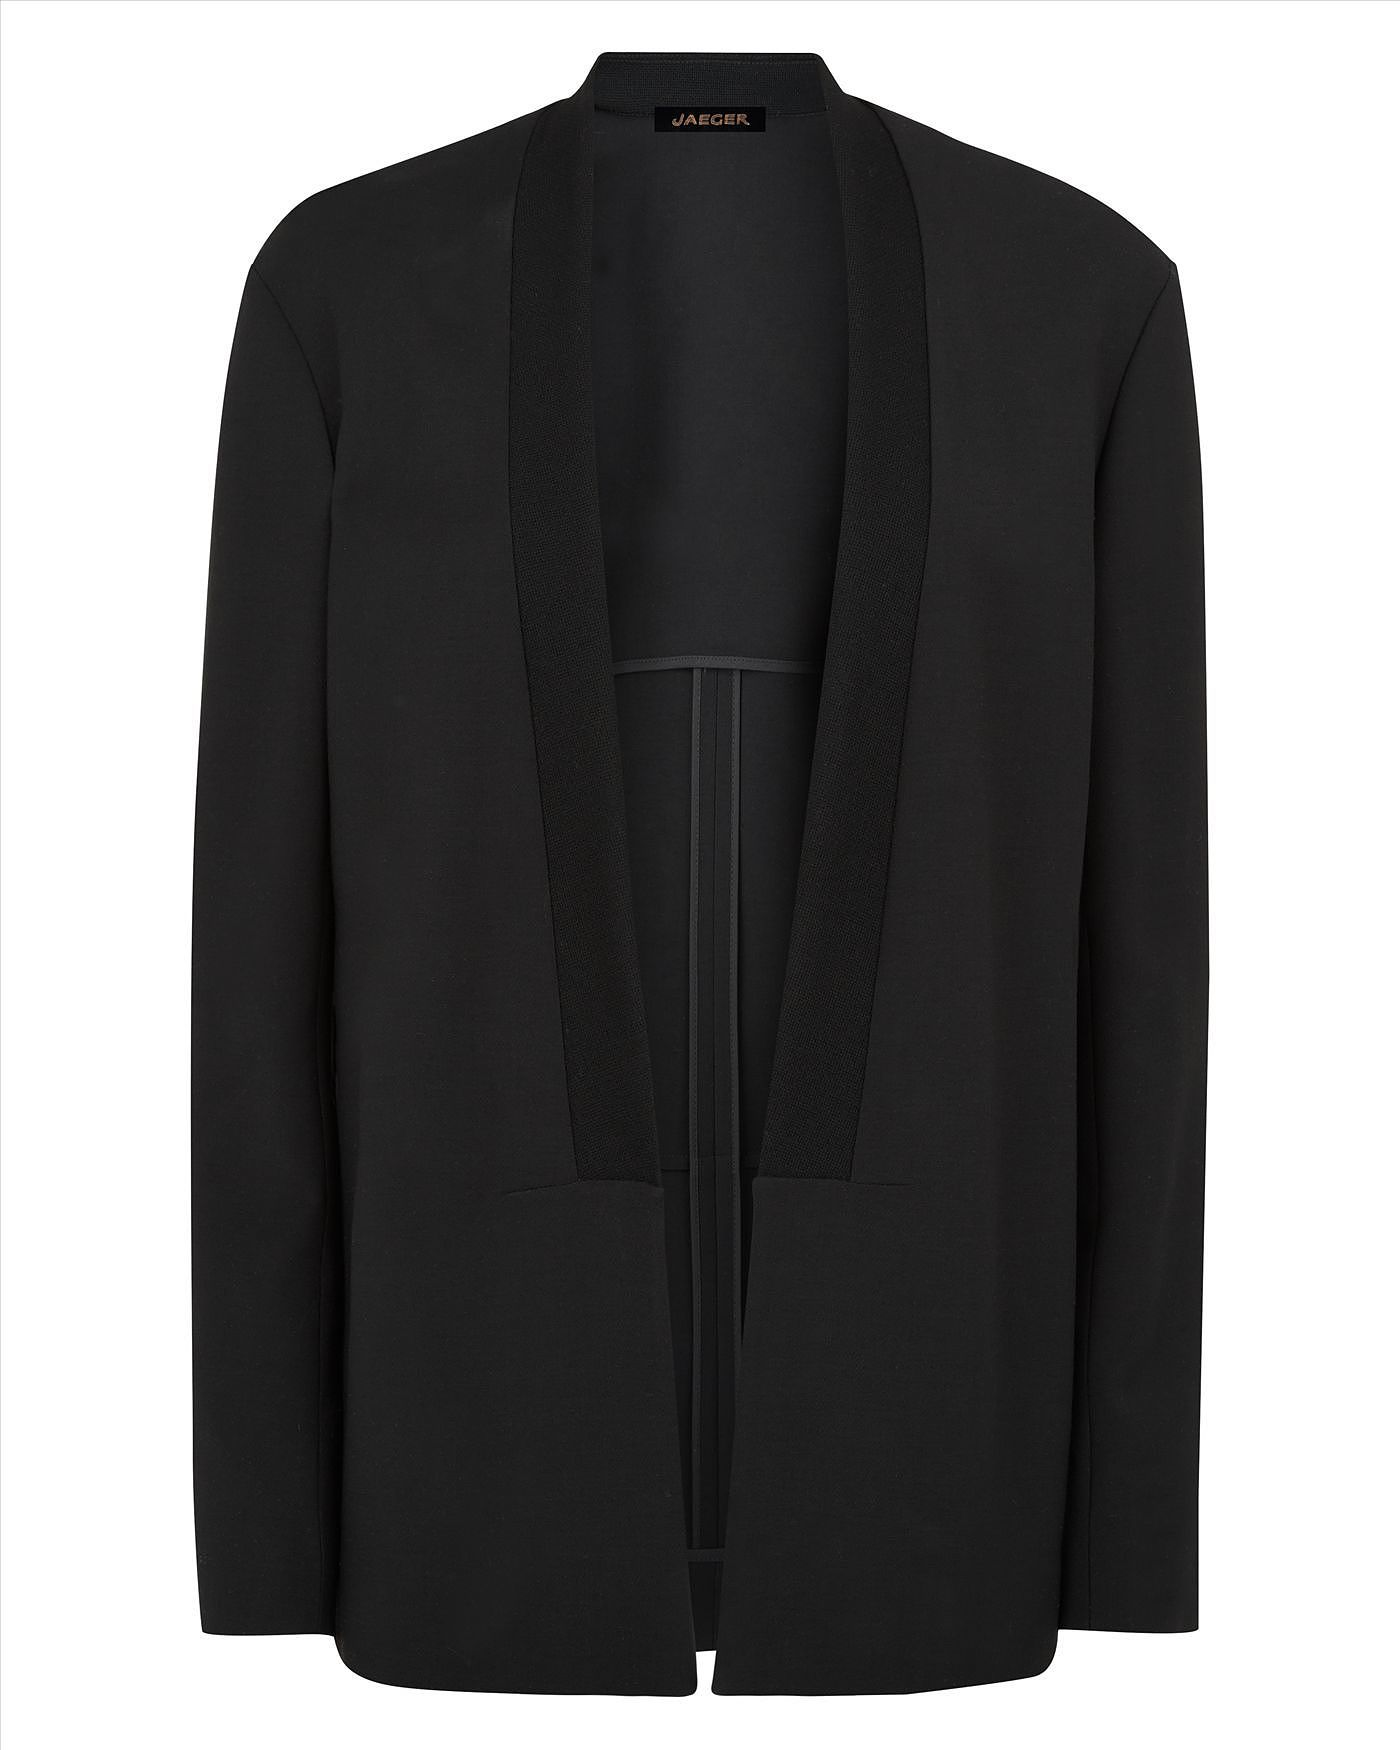 Womens black jacket from Jaeger £299 at ClothingByColour